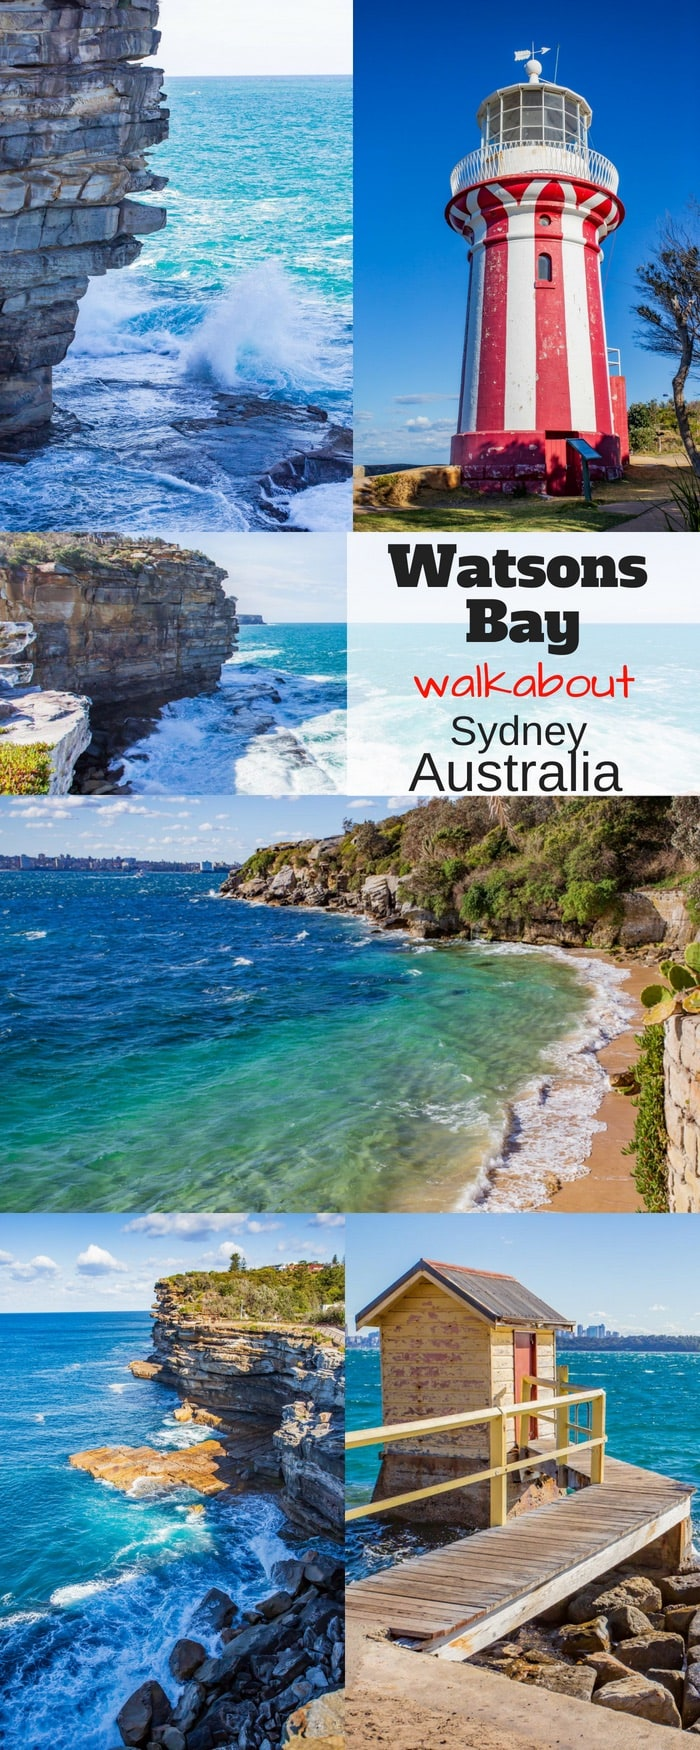 Watsons Bay, New South Wales is a suburb of Sydney Australia located at the end of the South Head peninsula. With gorgeous views of the harbor all the way to the Sydney Harbor Bridge, and cliff-top views of the Pacific, you'll love the easy walk and picturesque scenery. #savingroomfordessert #travel #hikearoundsydney #sydney #australia #watsonsbay #walkabout